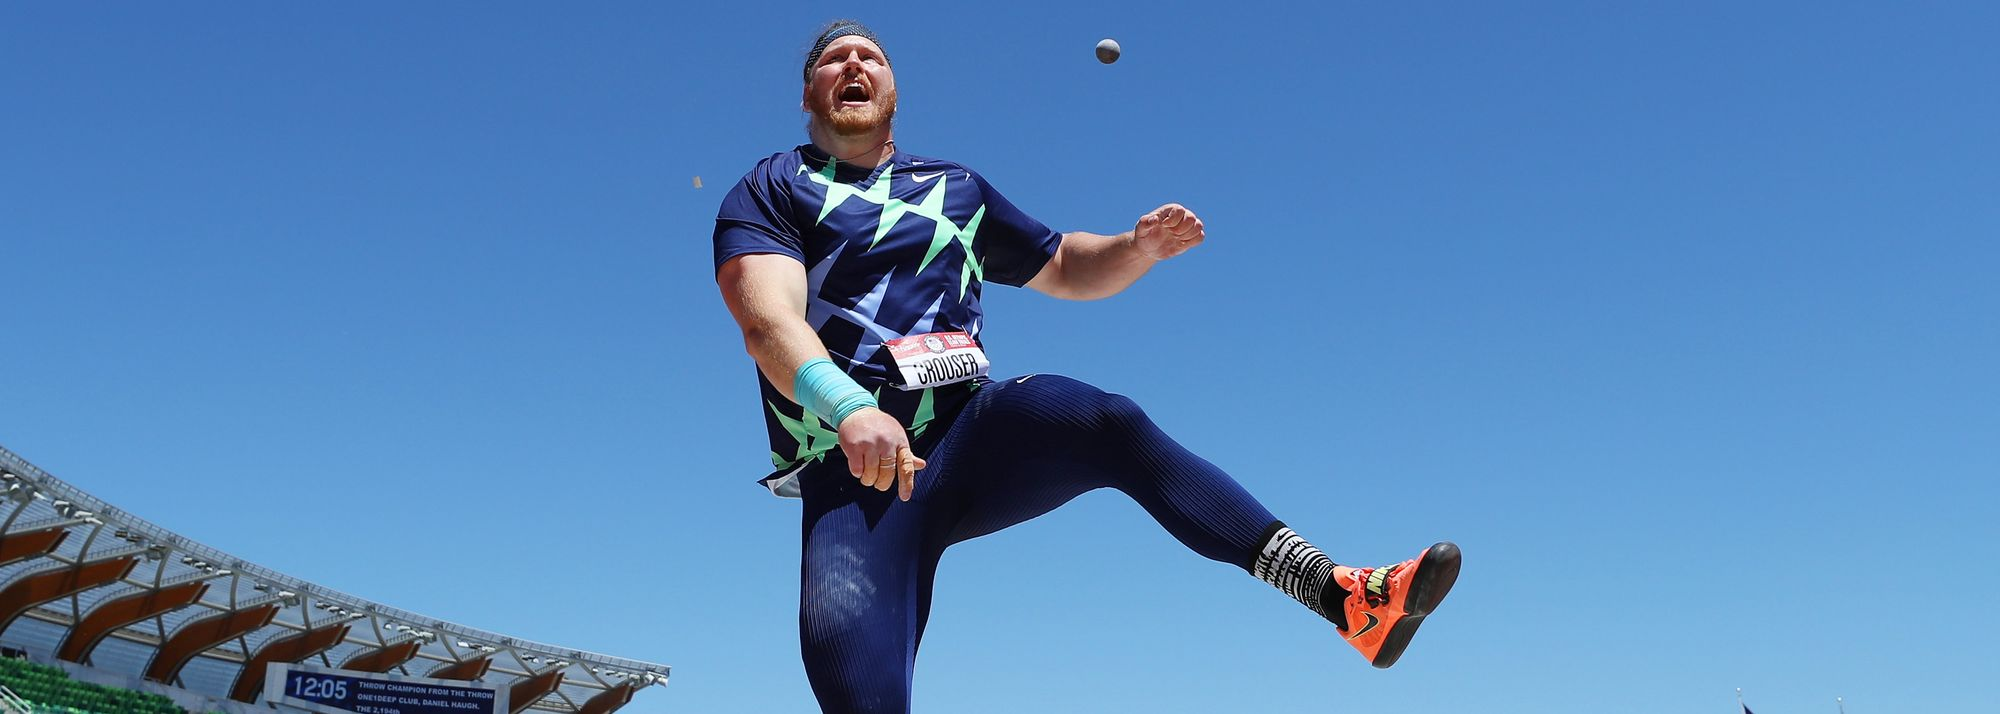 Olympic champion Ryan Crouser broke the long-standing world record in the shot put at the US Olympic Trials, throwing 23.37m* in Eugene on Friday (18).